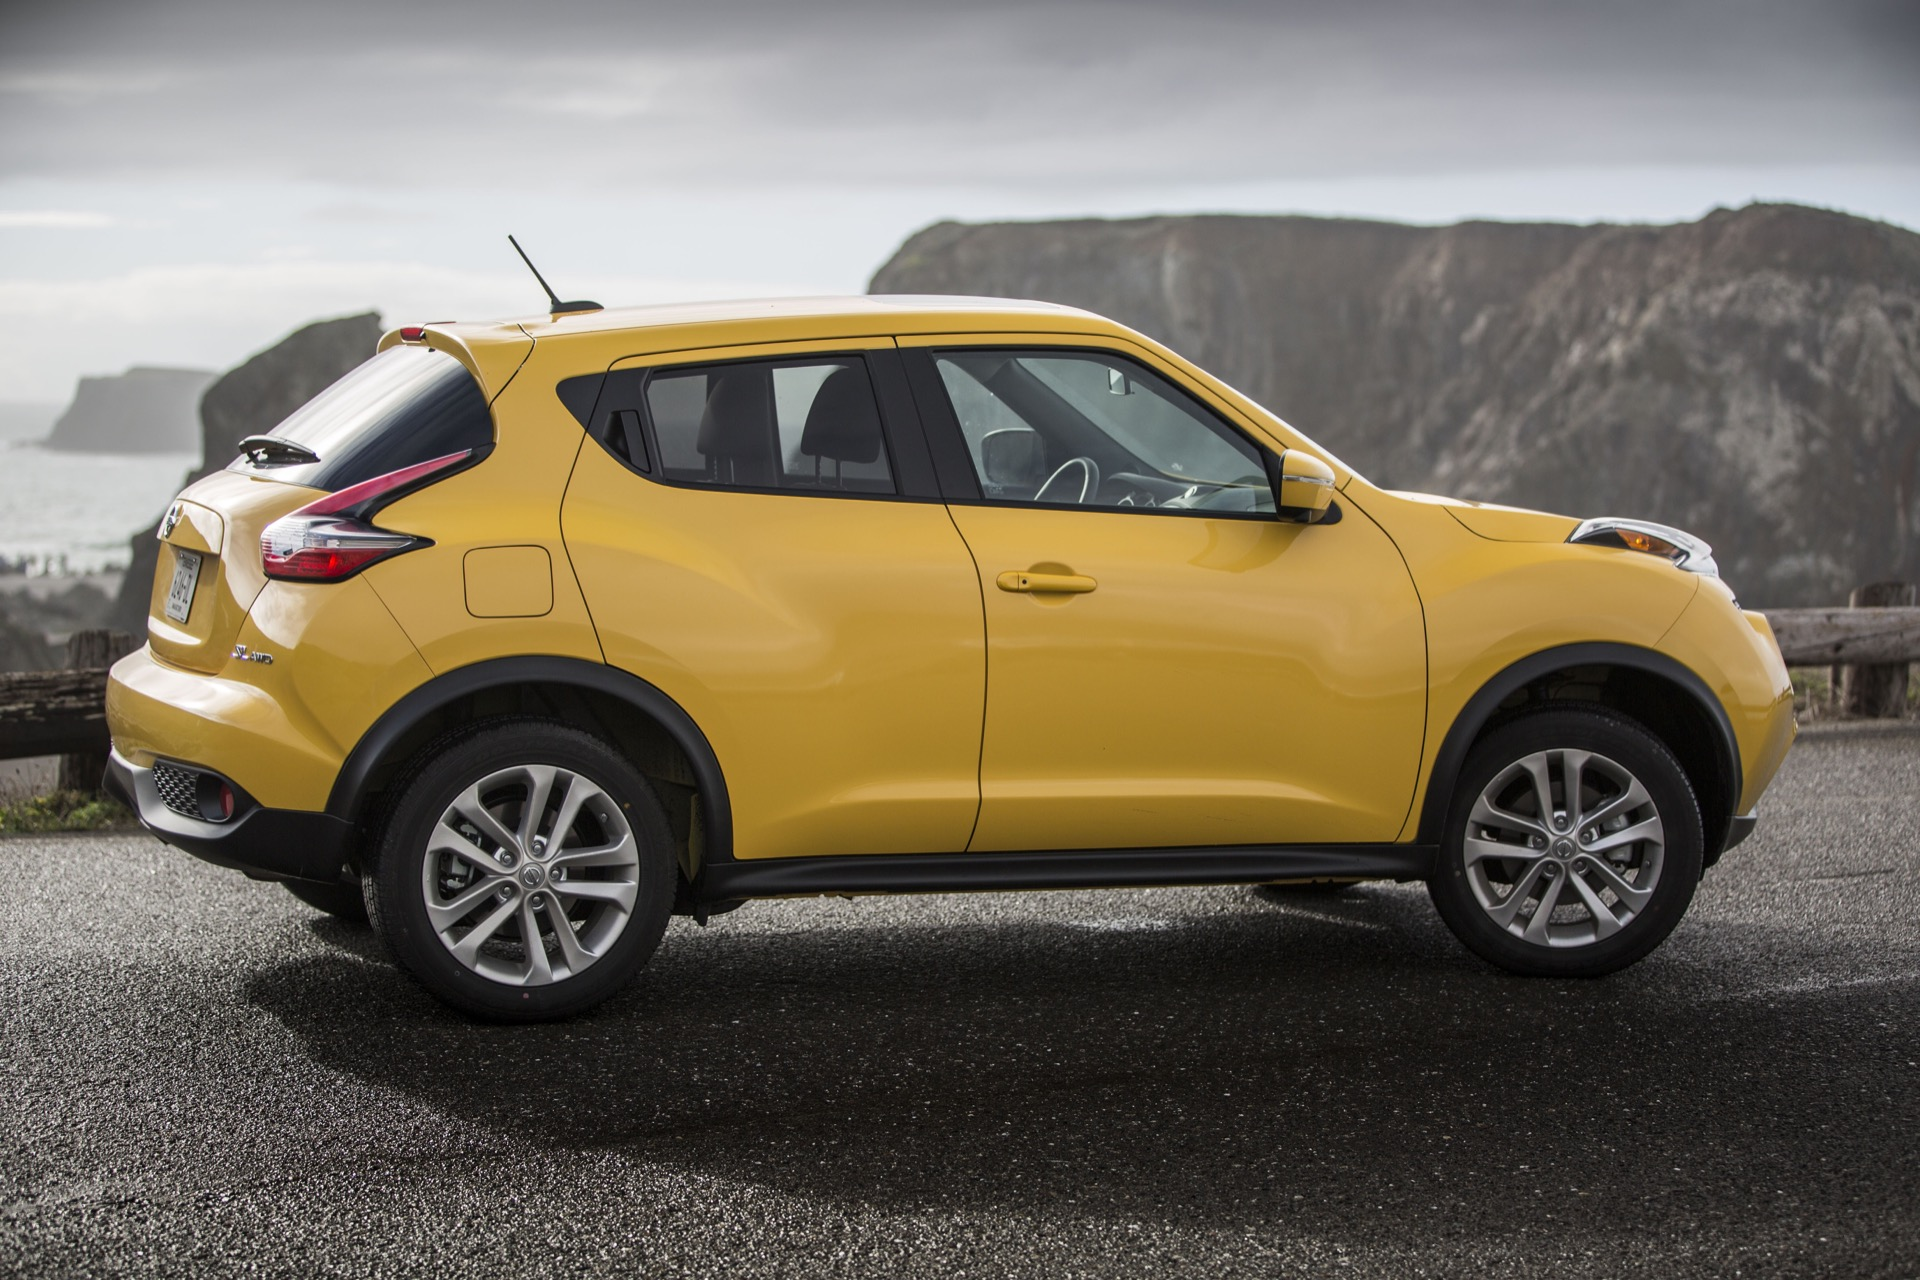 Used Mercedes Benz Dallas >> 2015 Nissan Juke Quality Review - The Car Connection